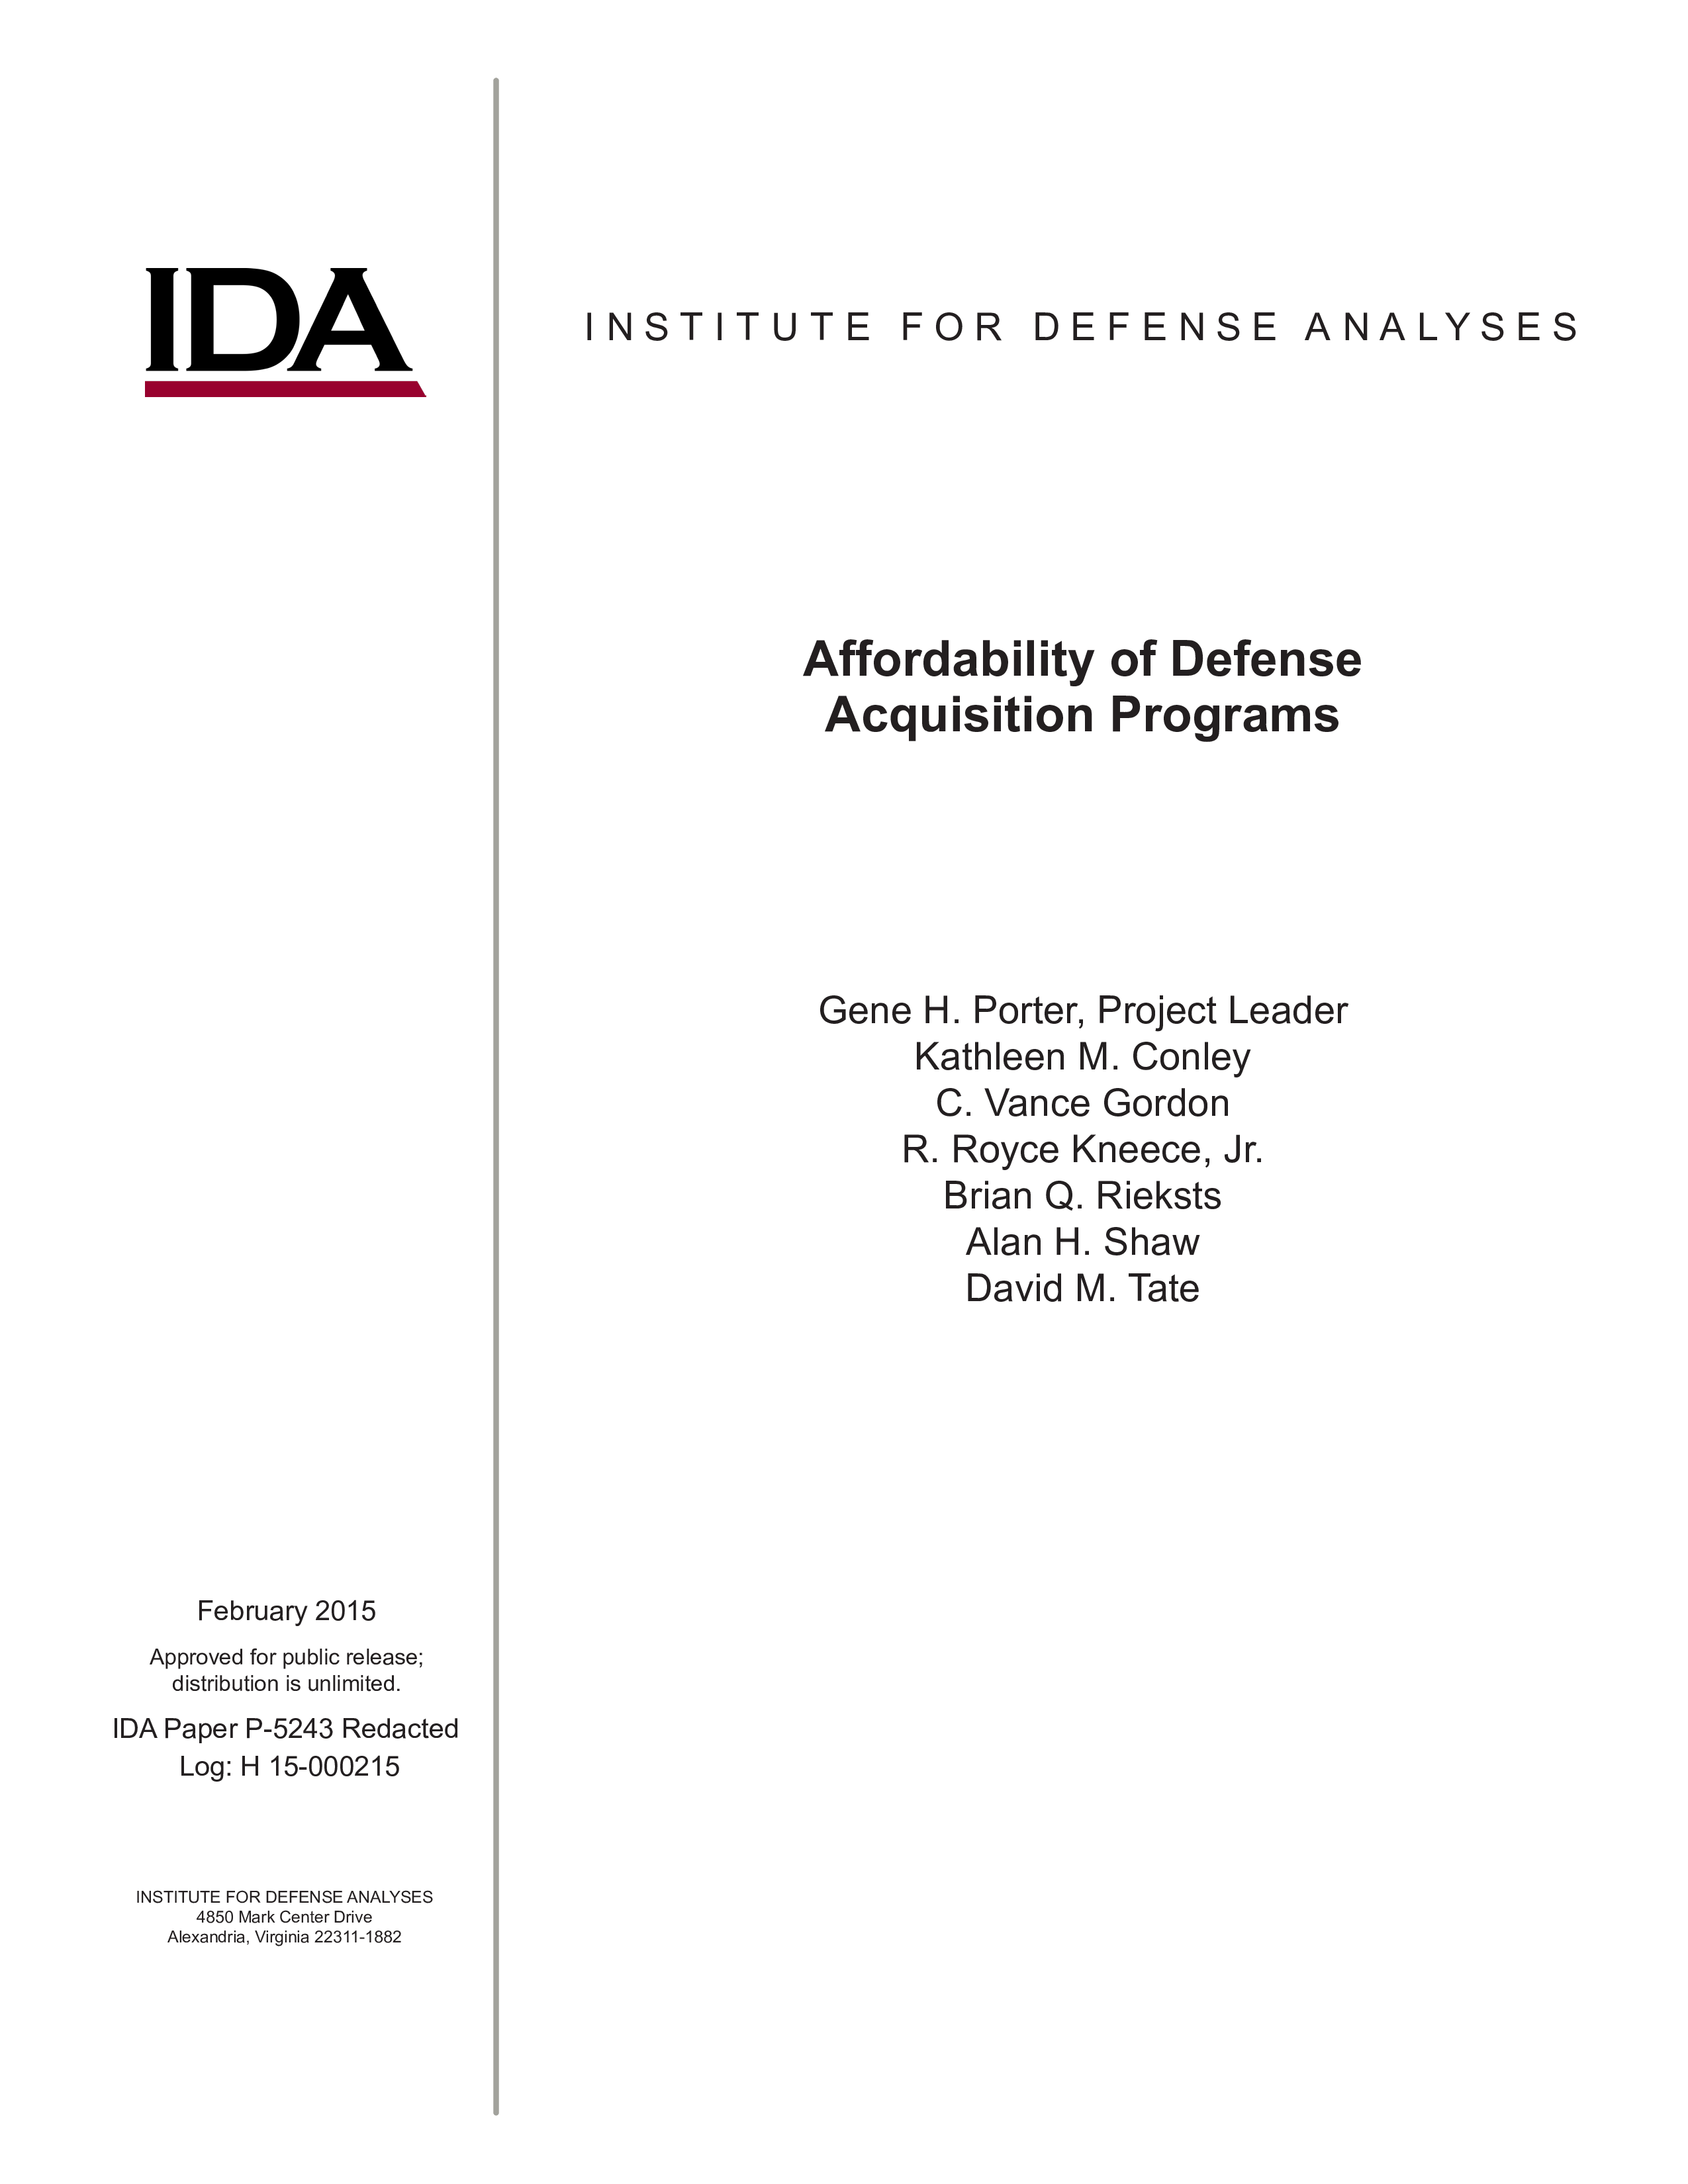 Affordability of Defense Acquisition Programs